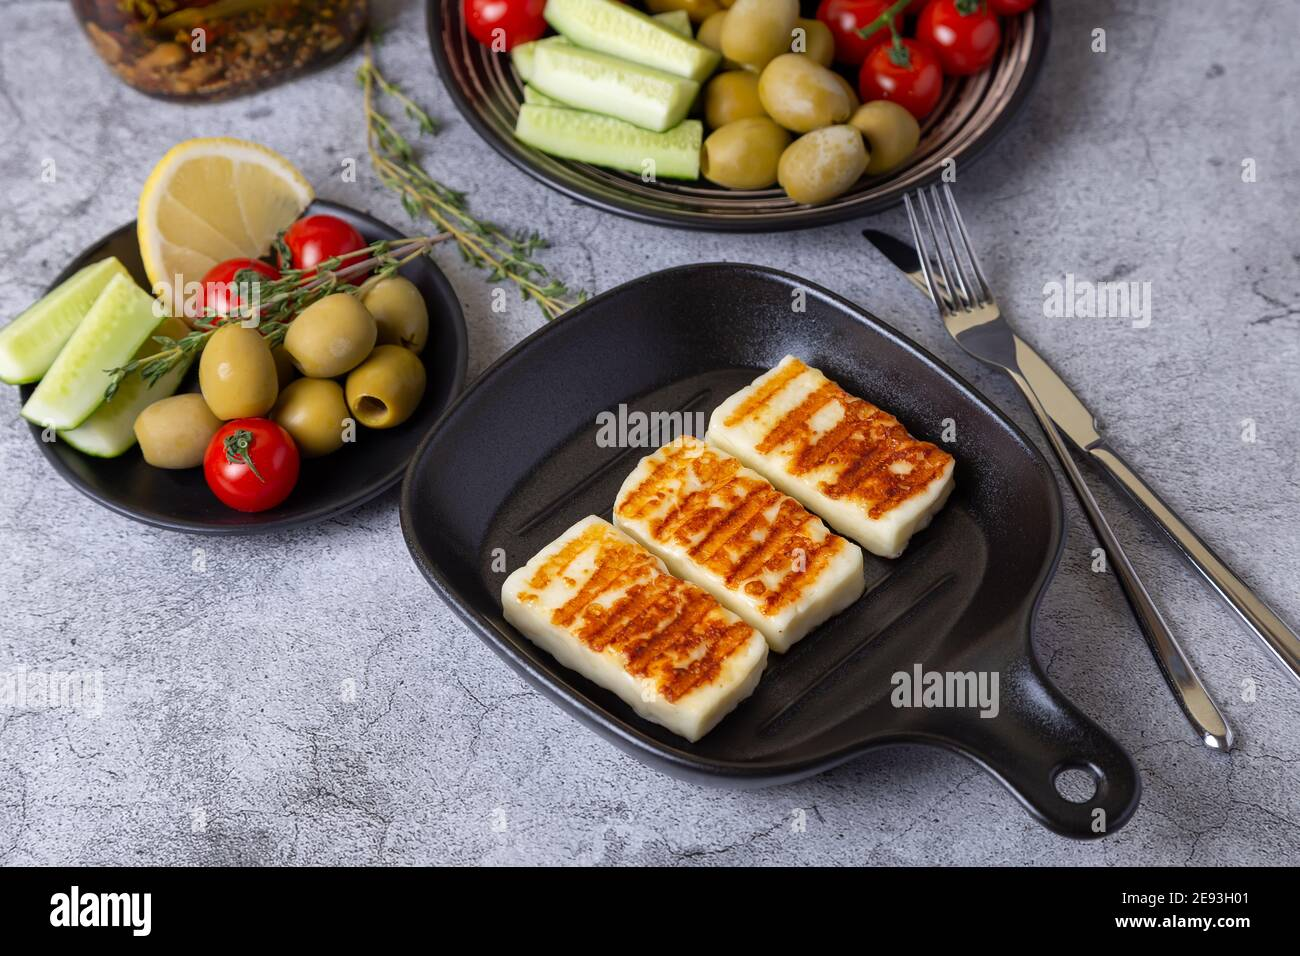 Grilled haloumi cheese on a black pan with olives, tomatoes, cucumbers and pepperoni. Close-up. Stock Photo